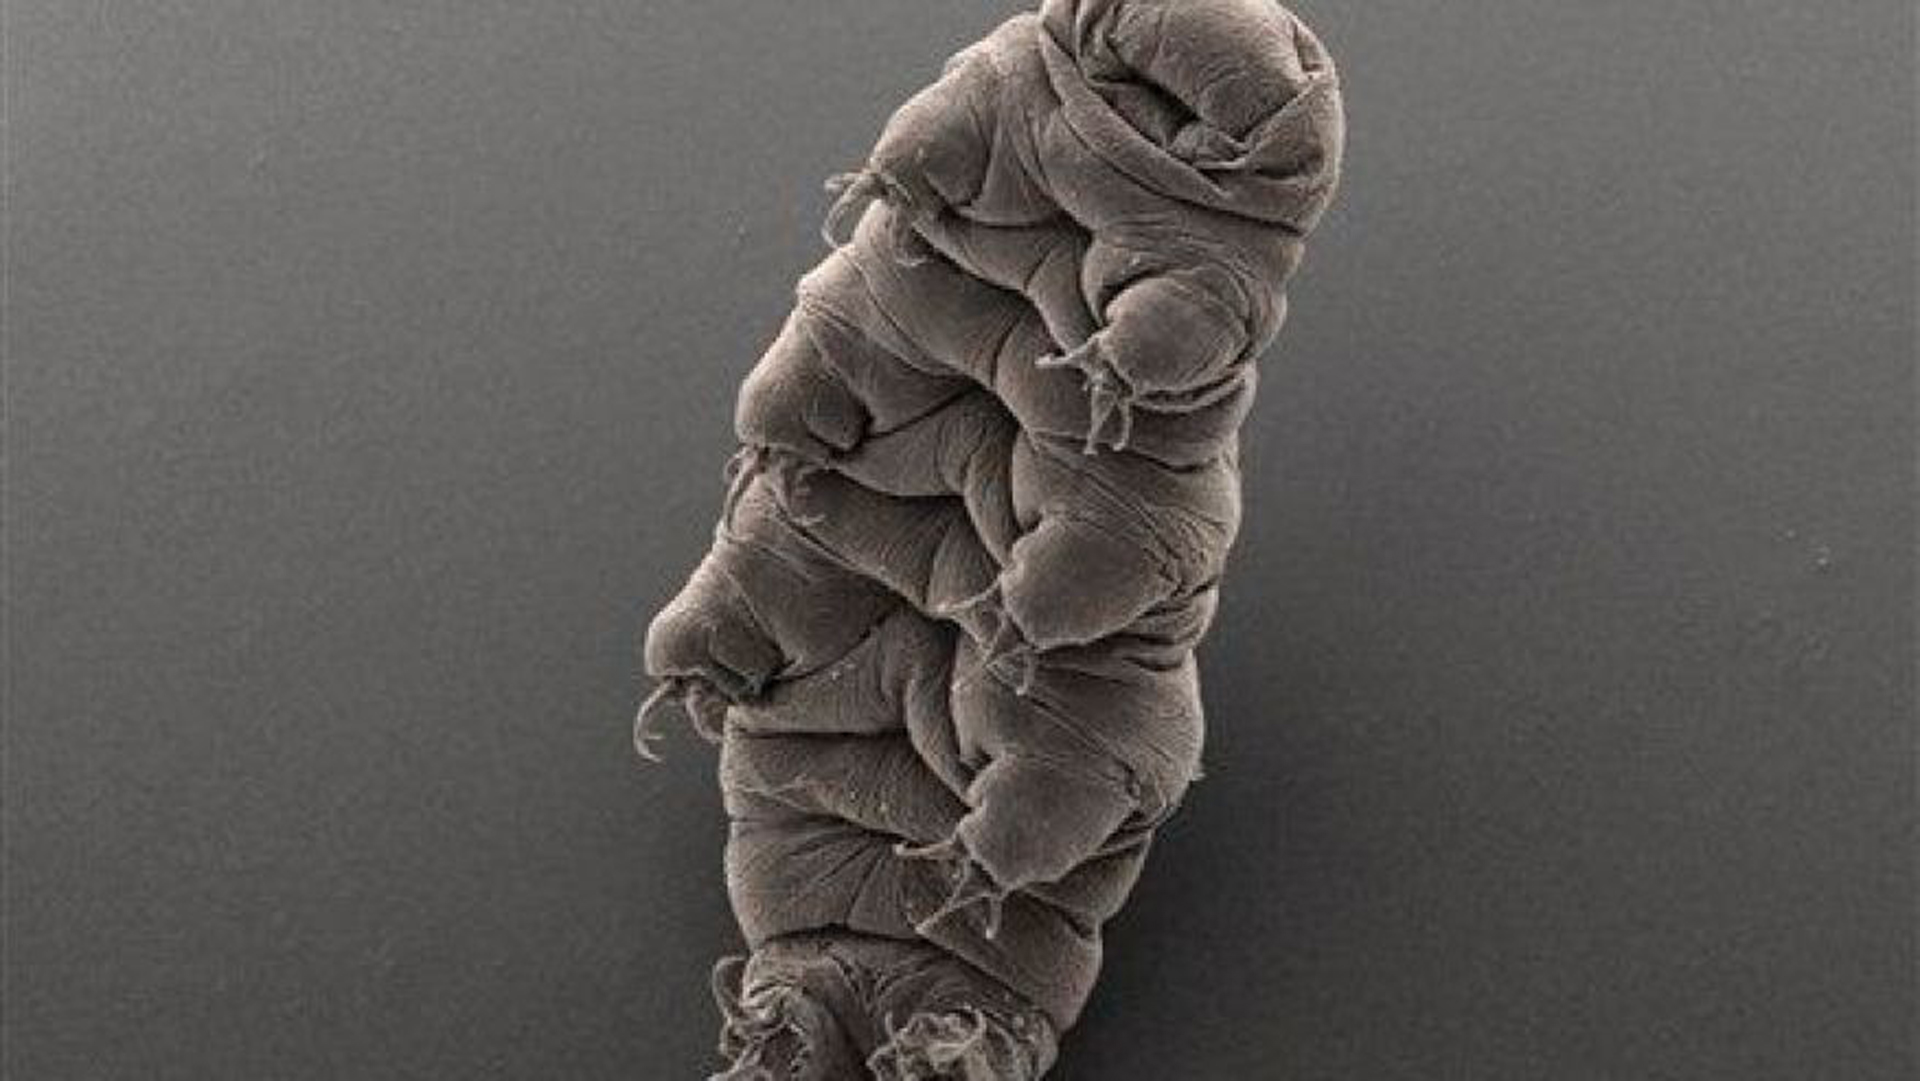 Tardigrades could (maybe) survive a nuclear attack. And now we know how.